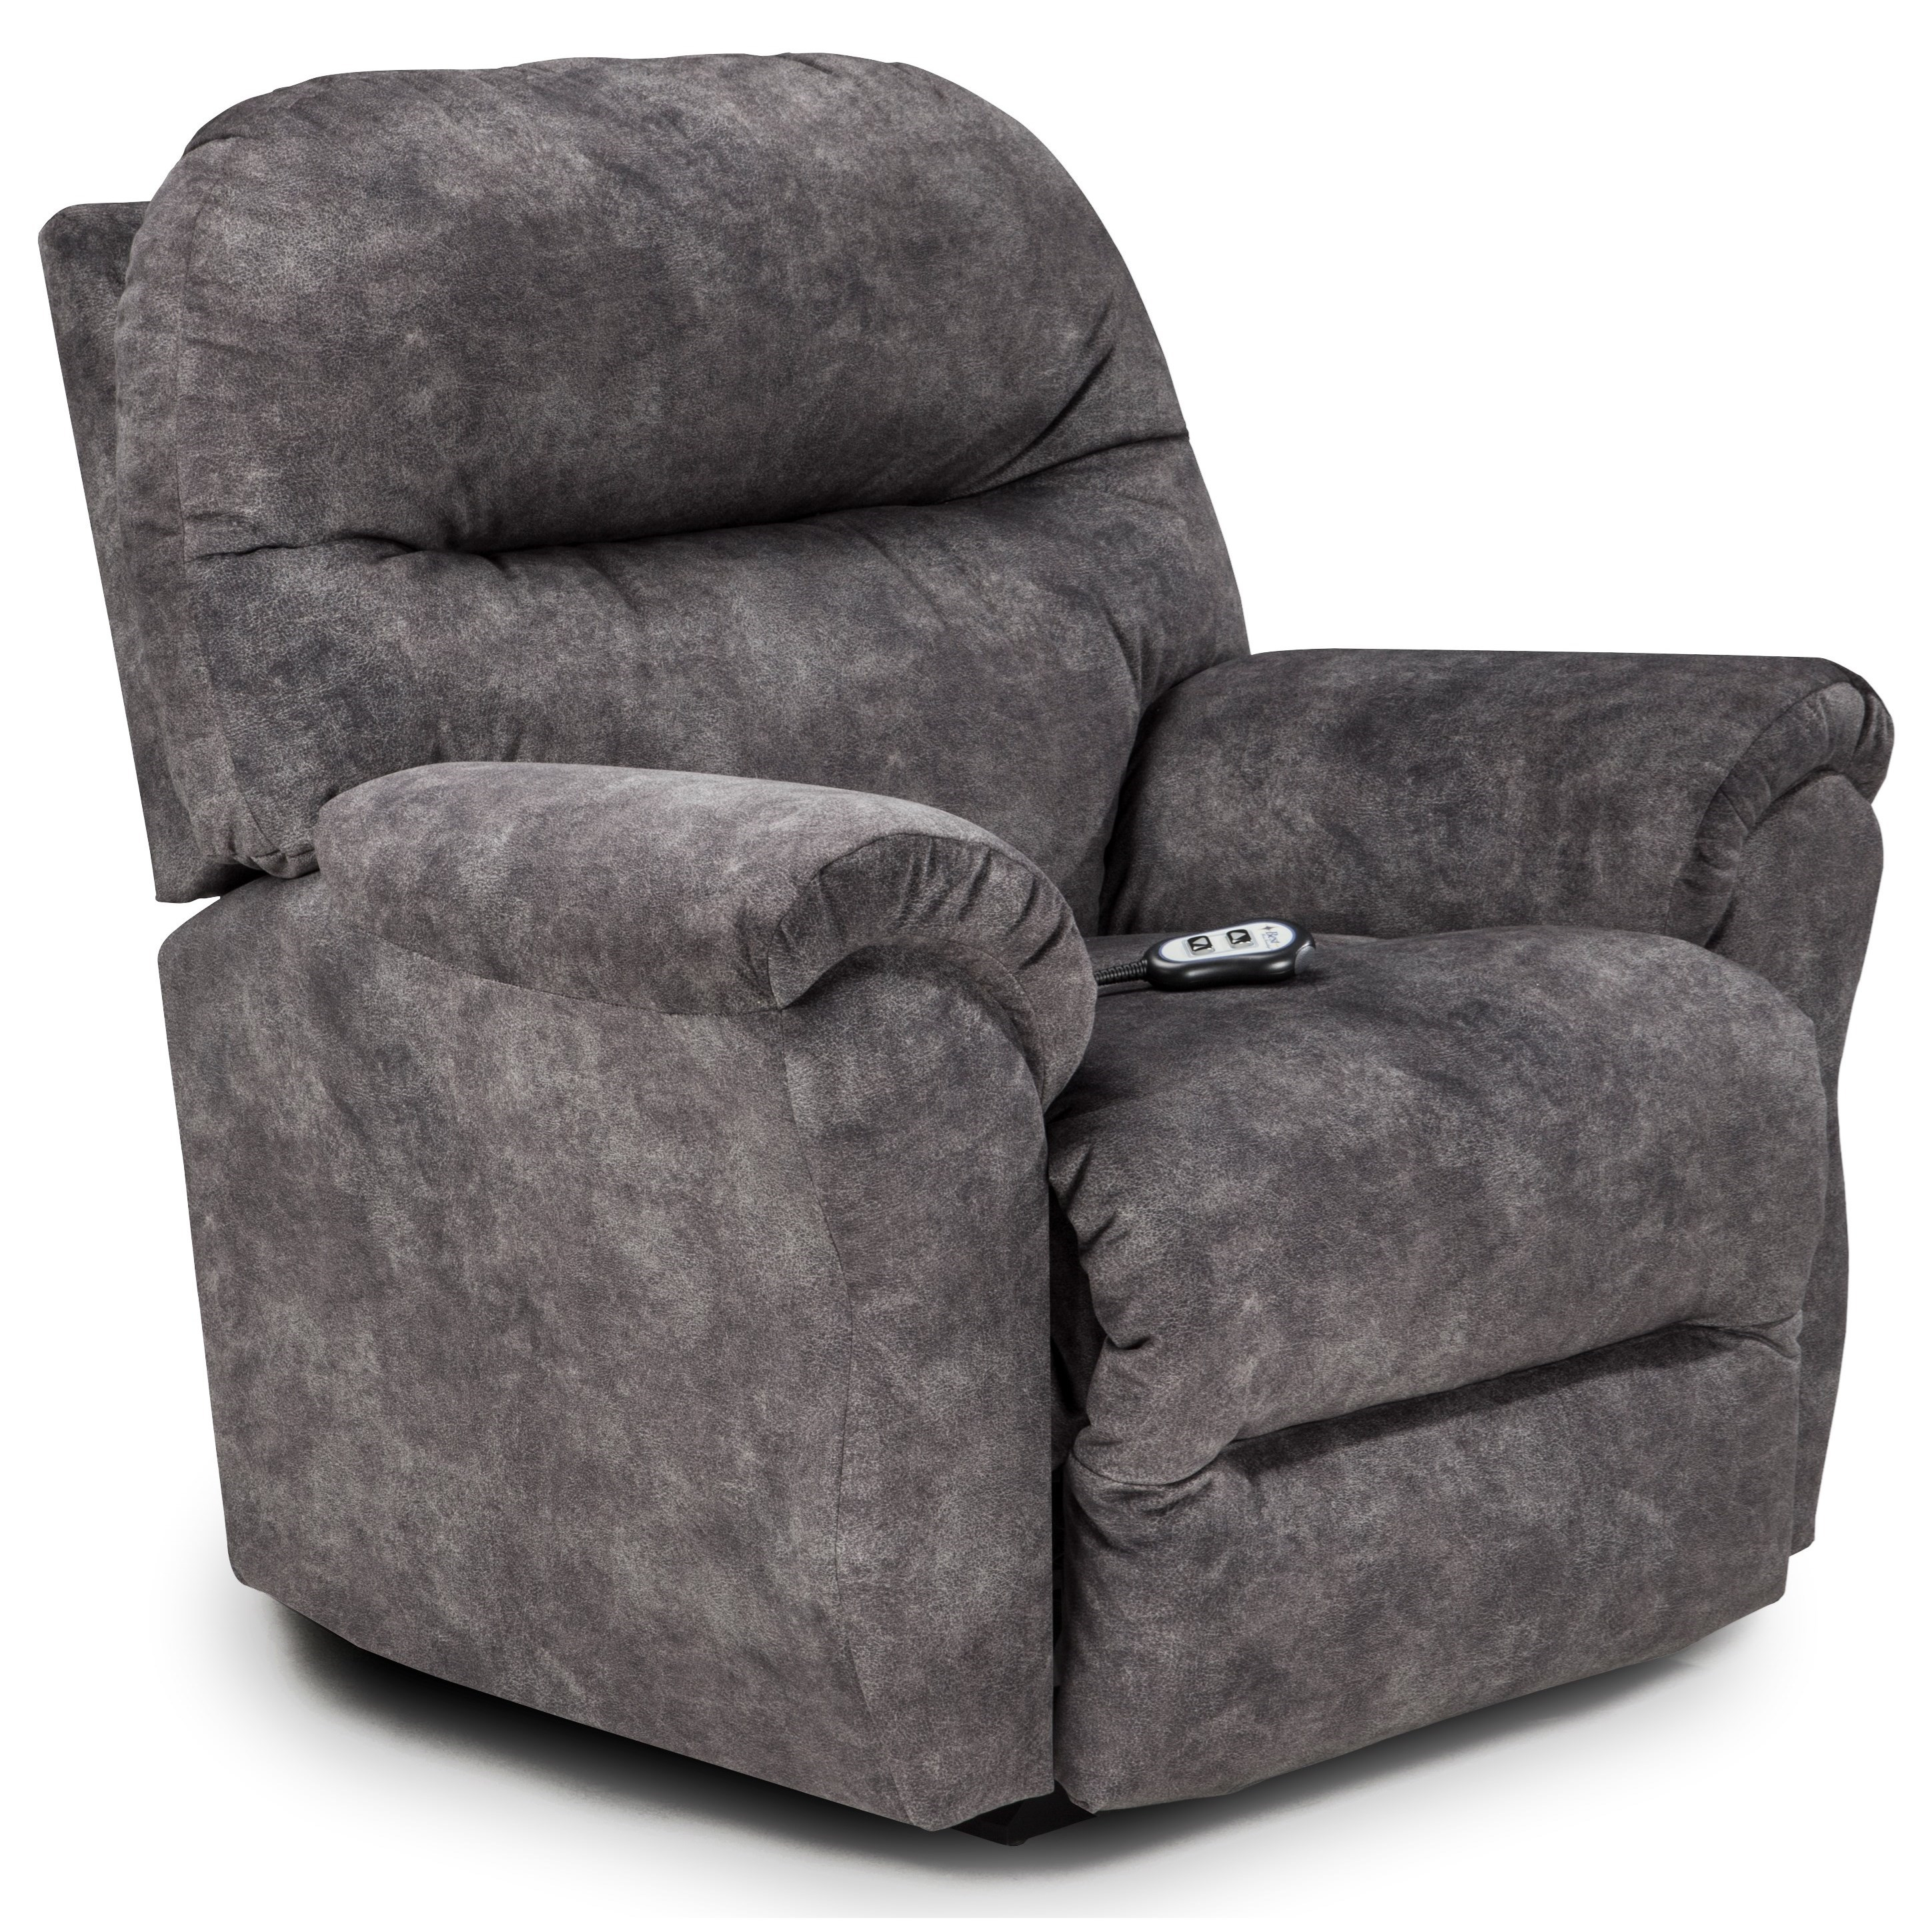 Bodie Power Lift Recliner by Best Home Furnishings at Baer's Furniture